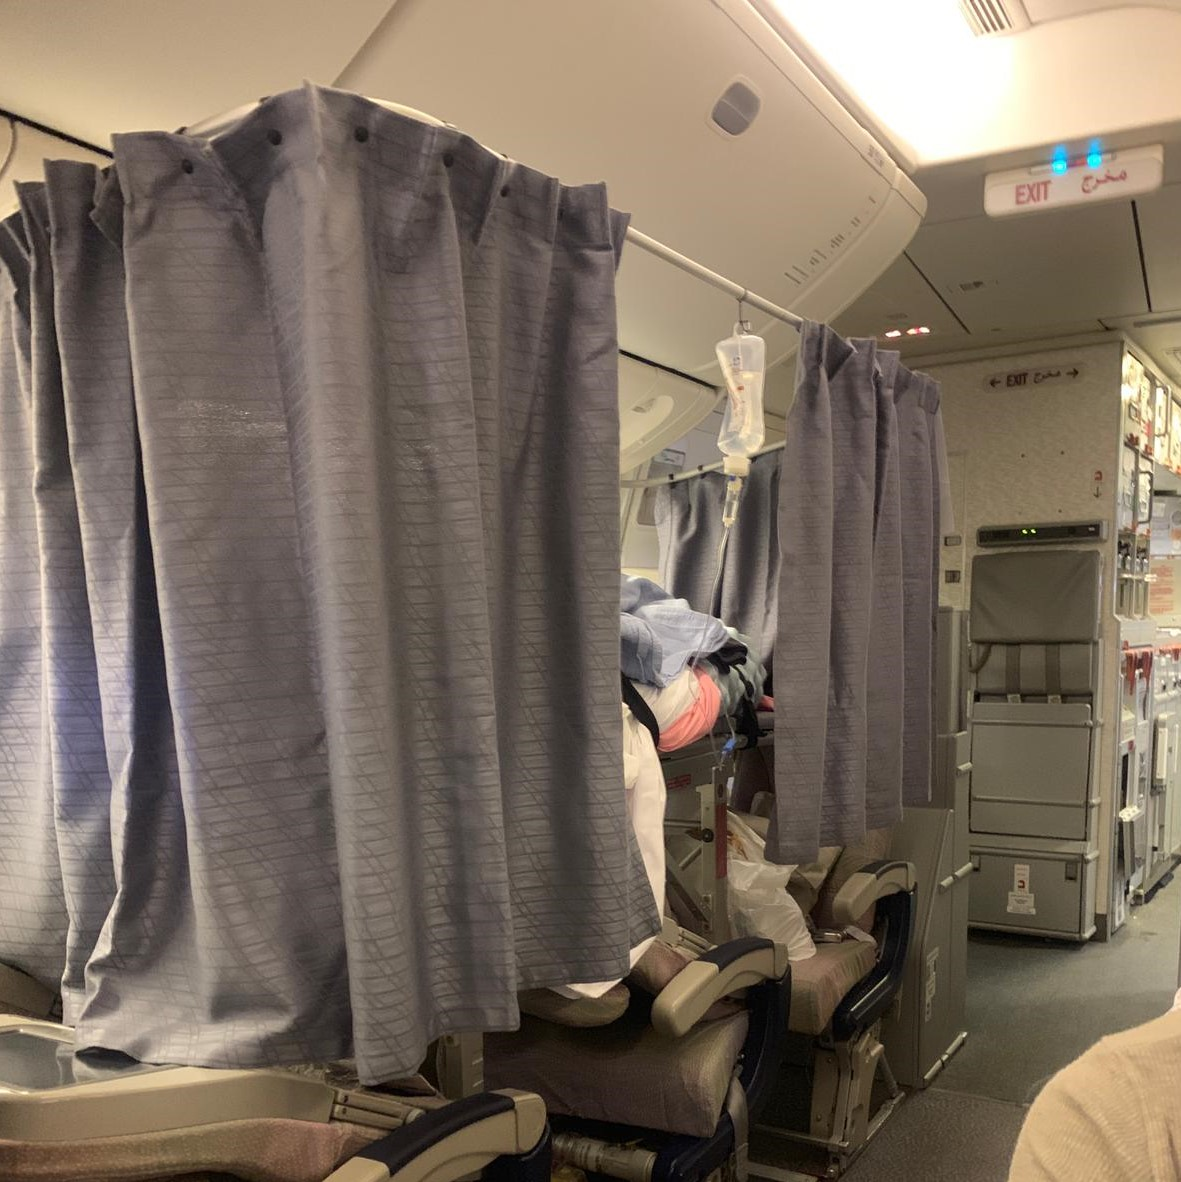 Stretcher Service on Commercial Airline